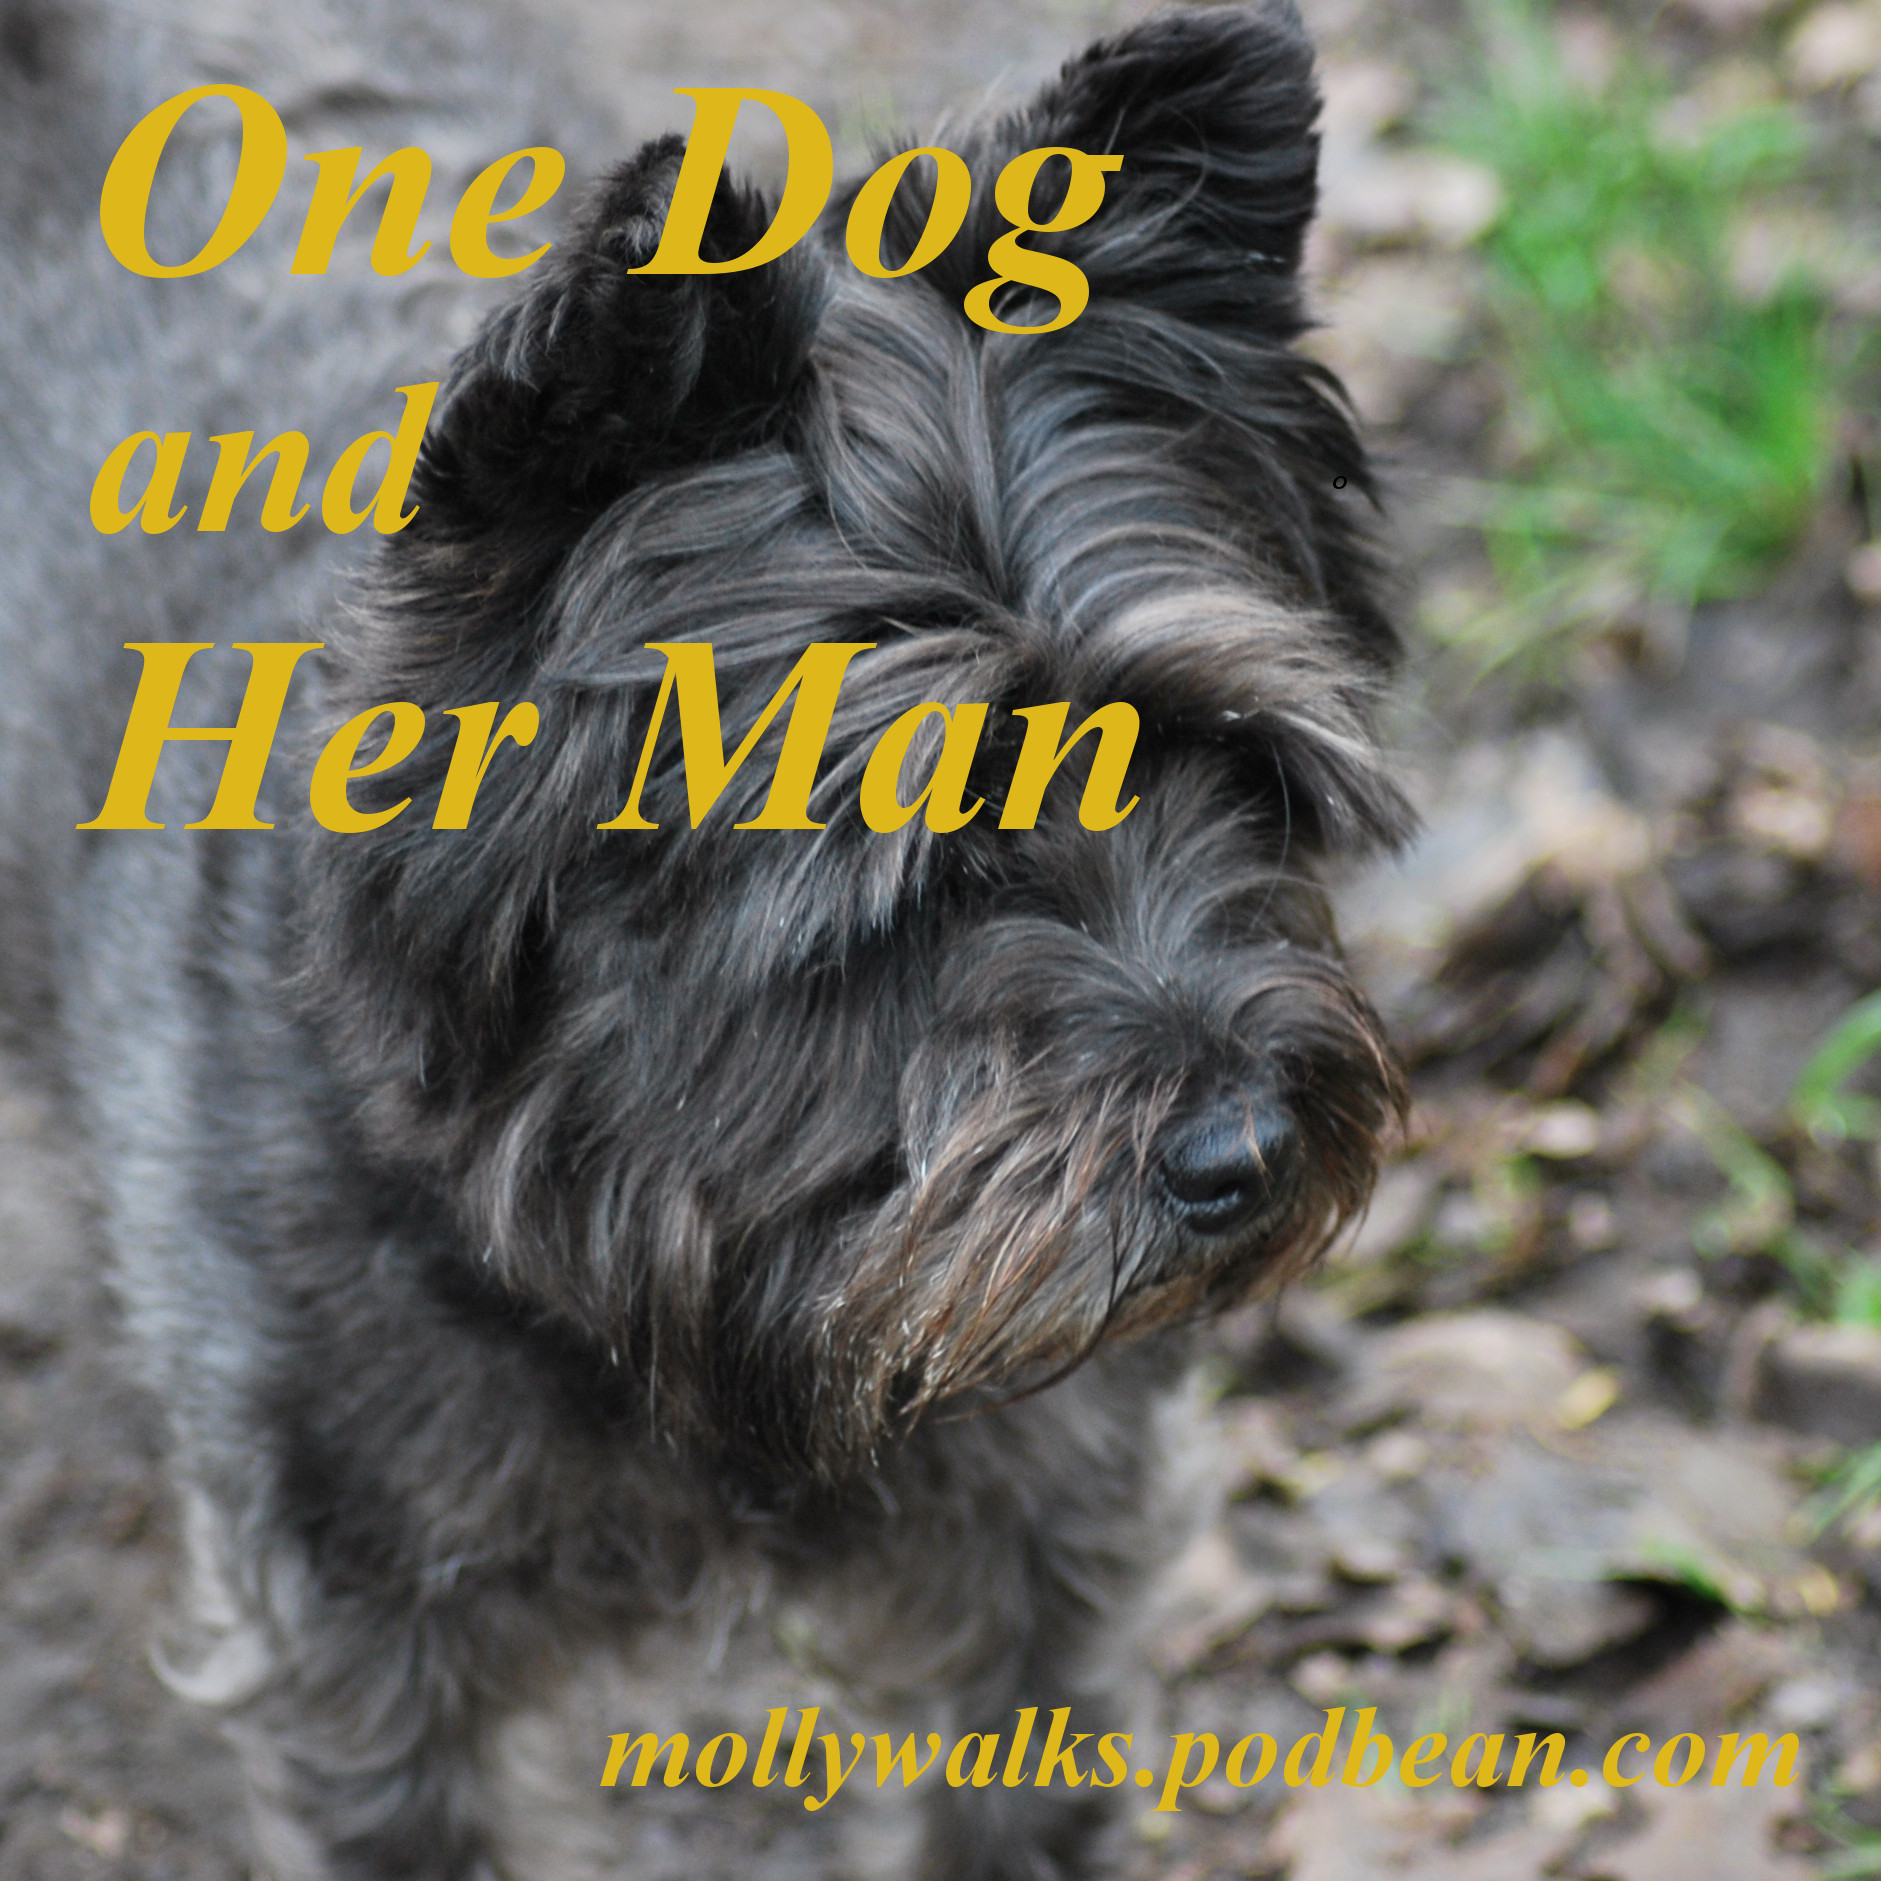 One Dog and Her Man